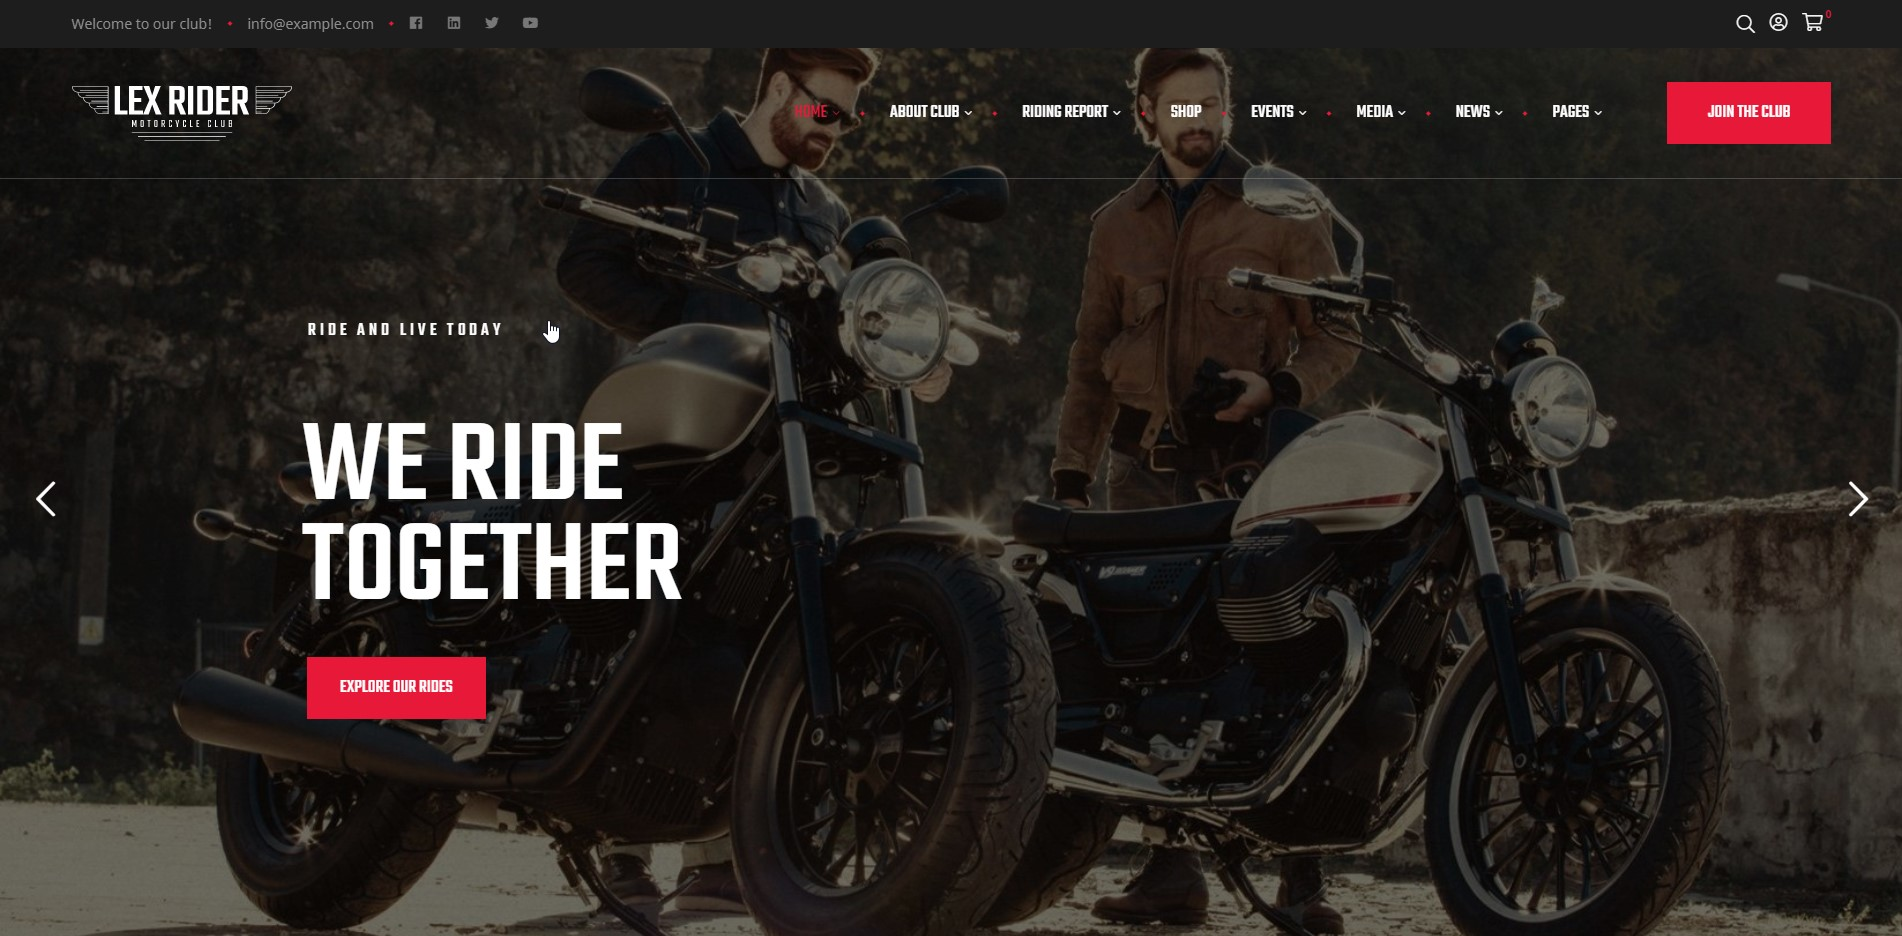 LexRider - Motocycle WordPress Theme